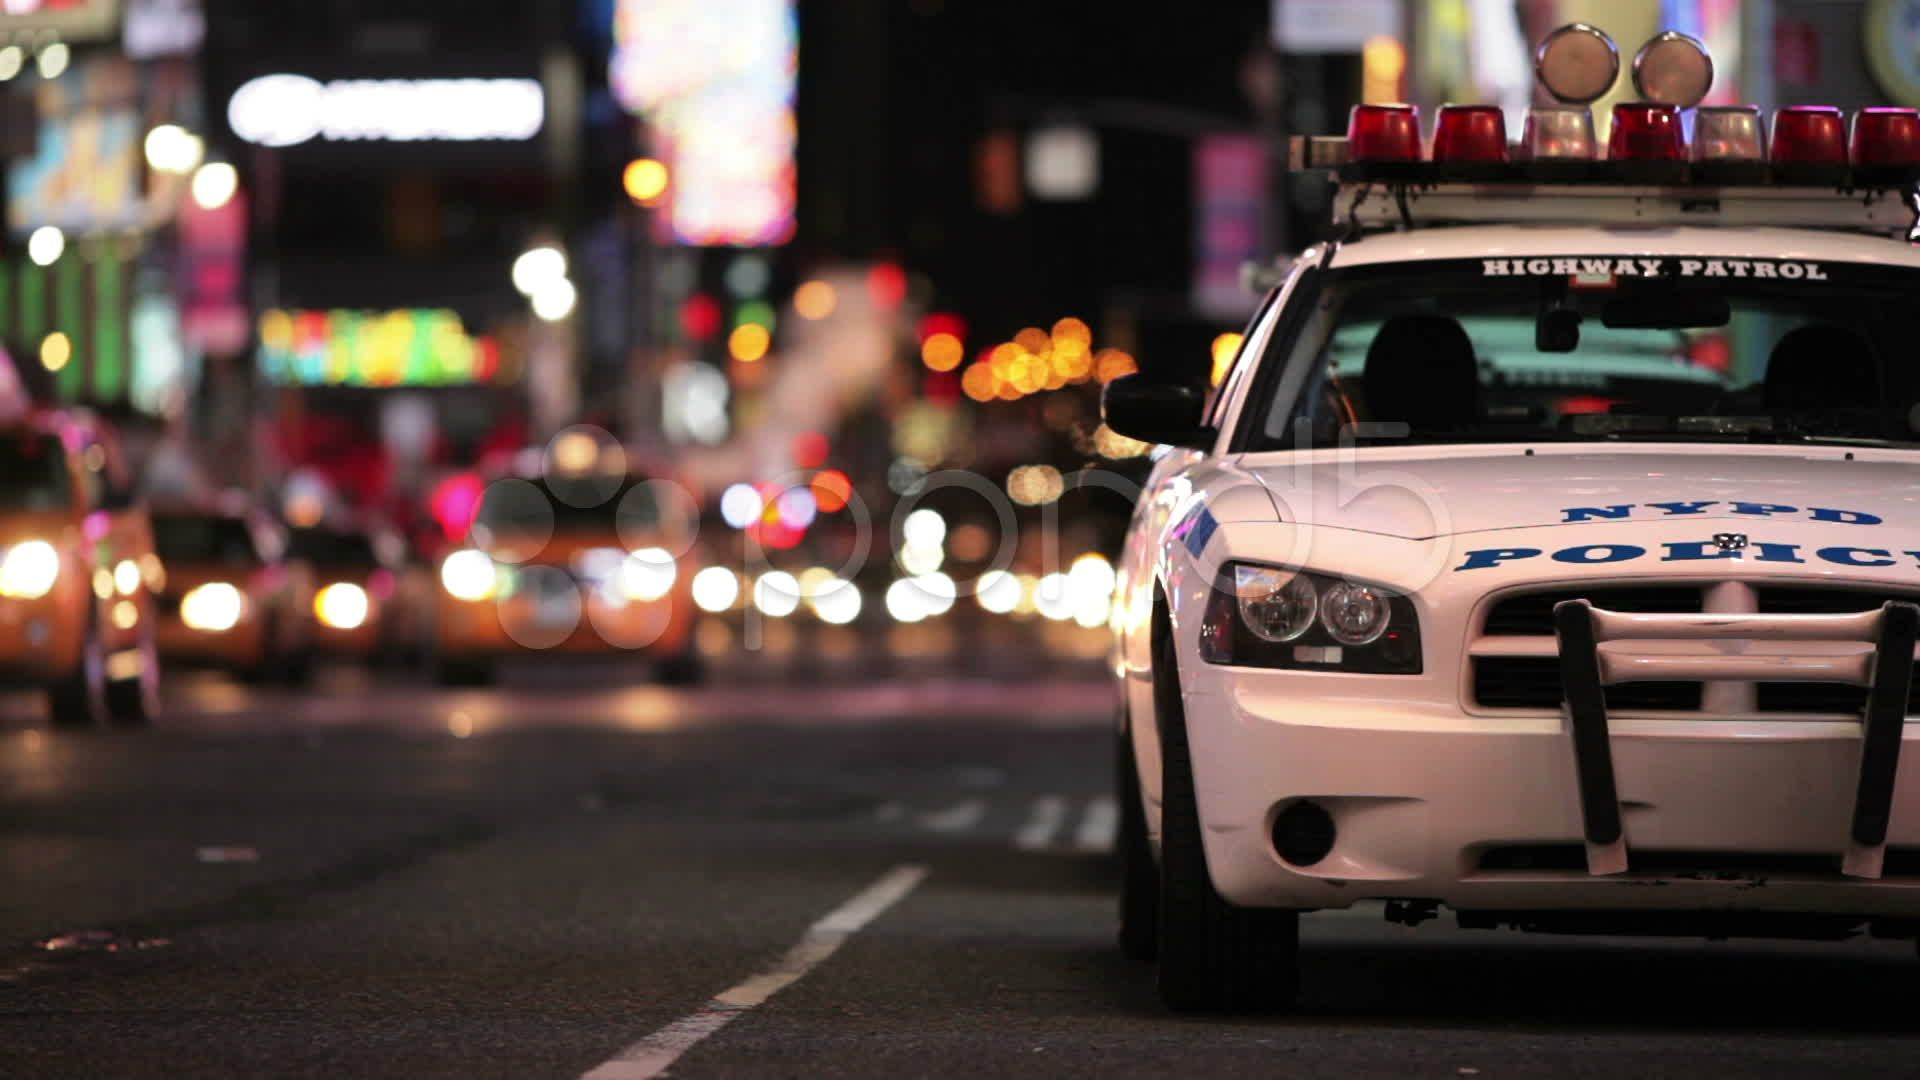 Police Car in Times Square, New York City Manhattan NYC